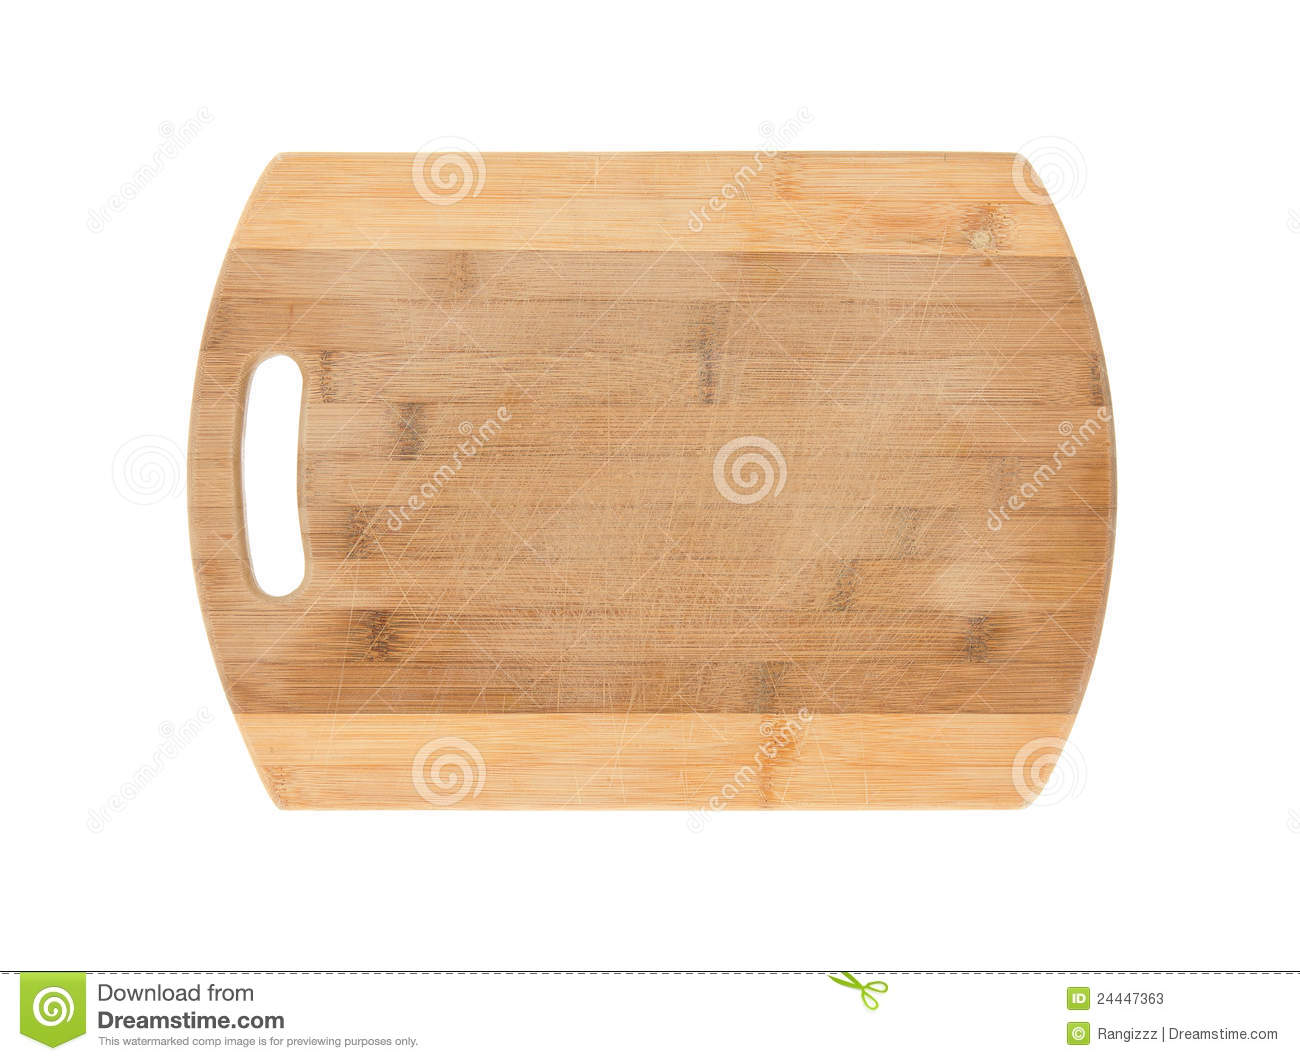 Simple kitchen design tool - Wooden Cutting Board Stock Photos Image 24447363